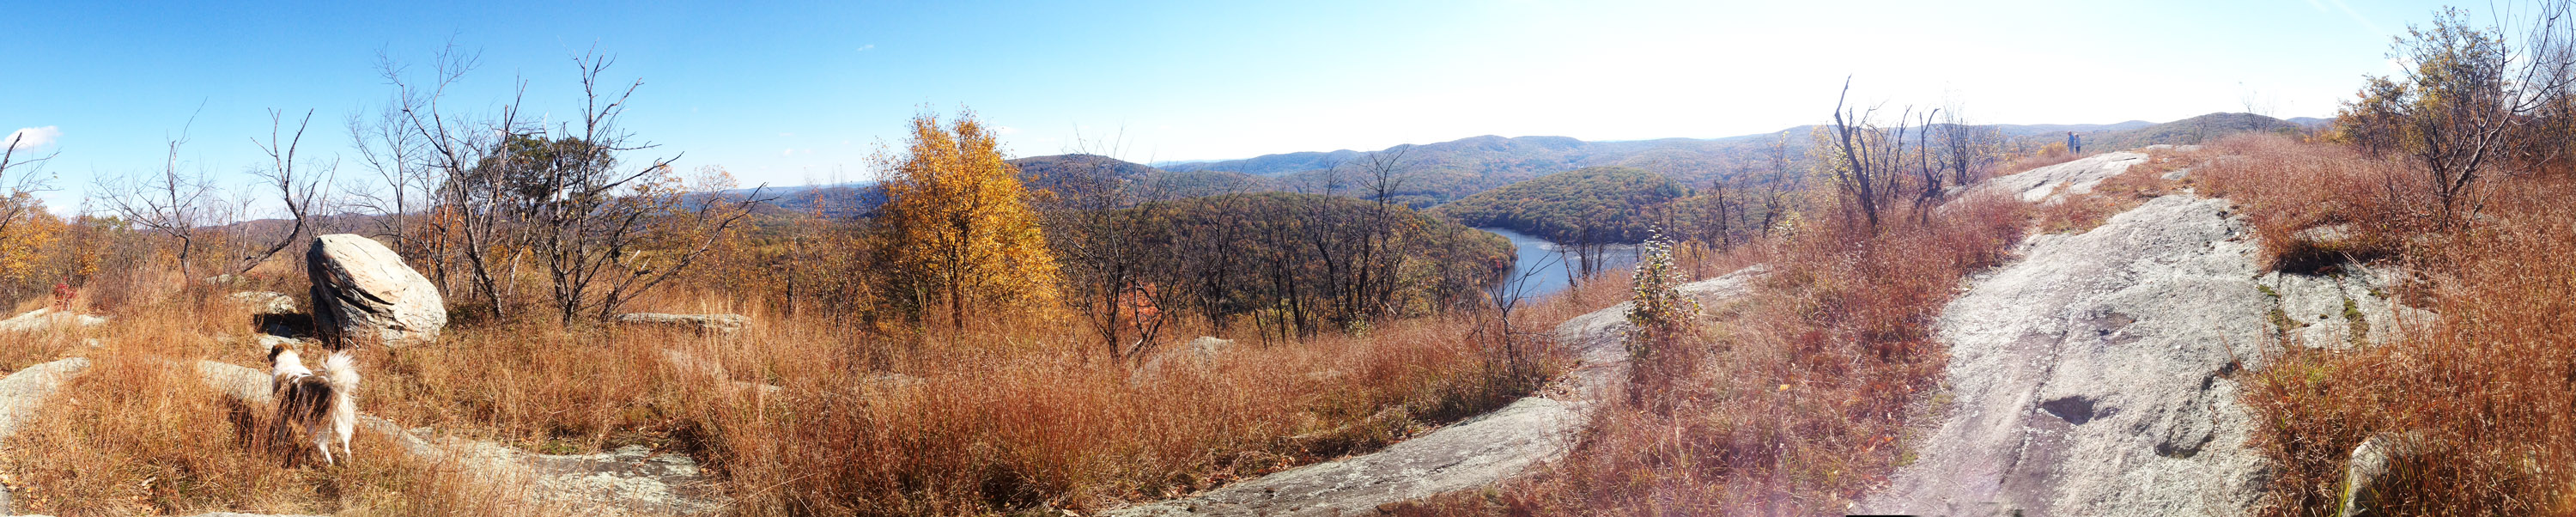 Hike to the top of Long Mountain, via the Long Path, in Harriman State Park New York.